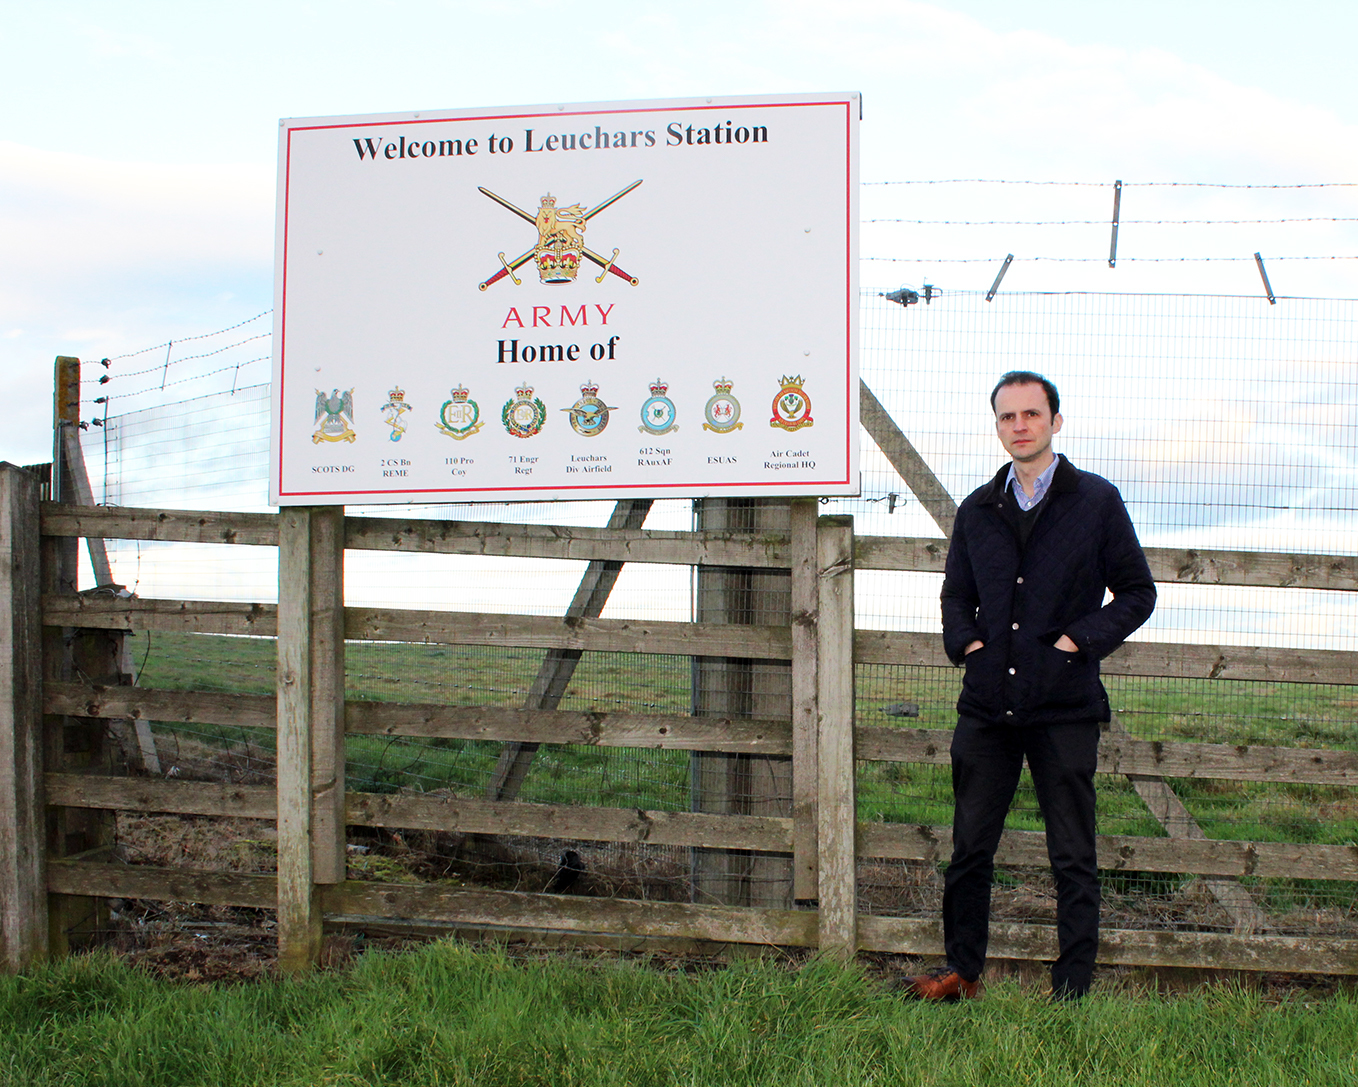 Stephen Gethins pictured at Leuchars Station.